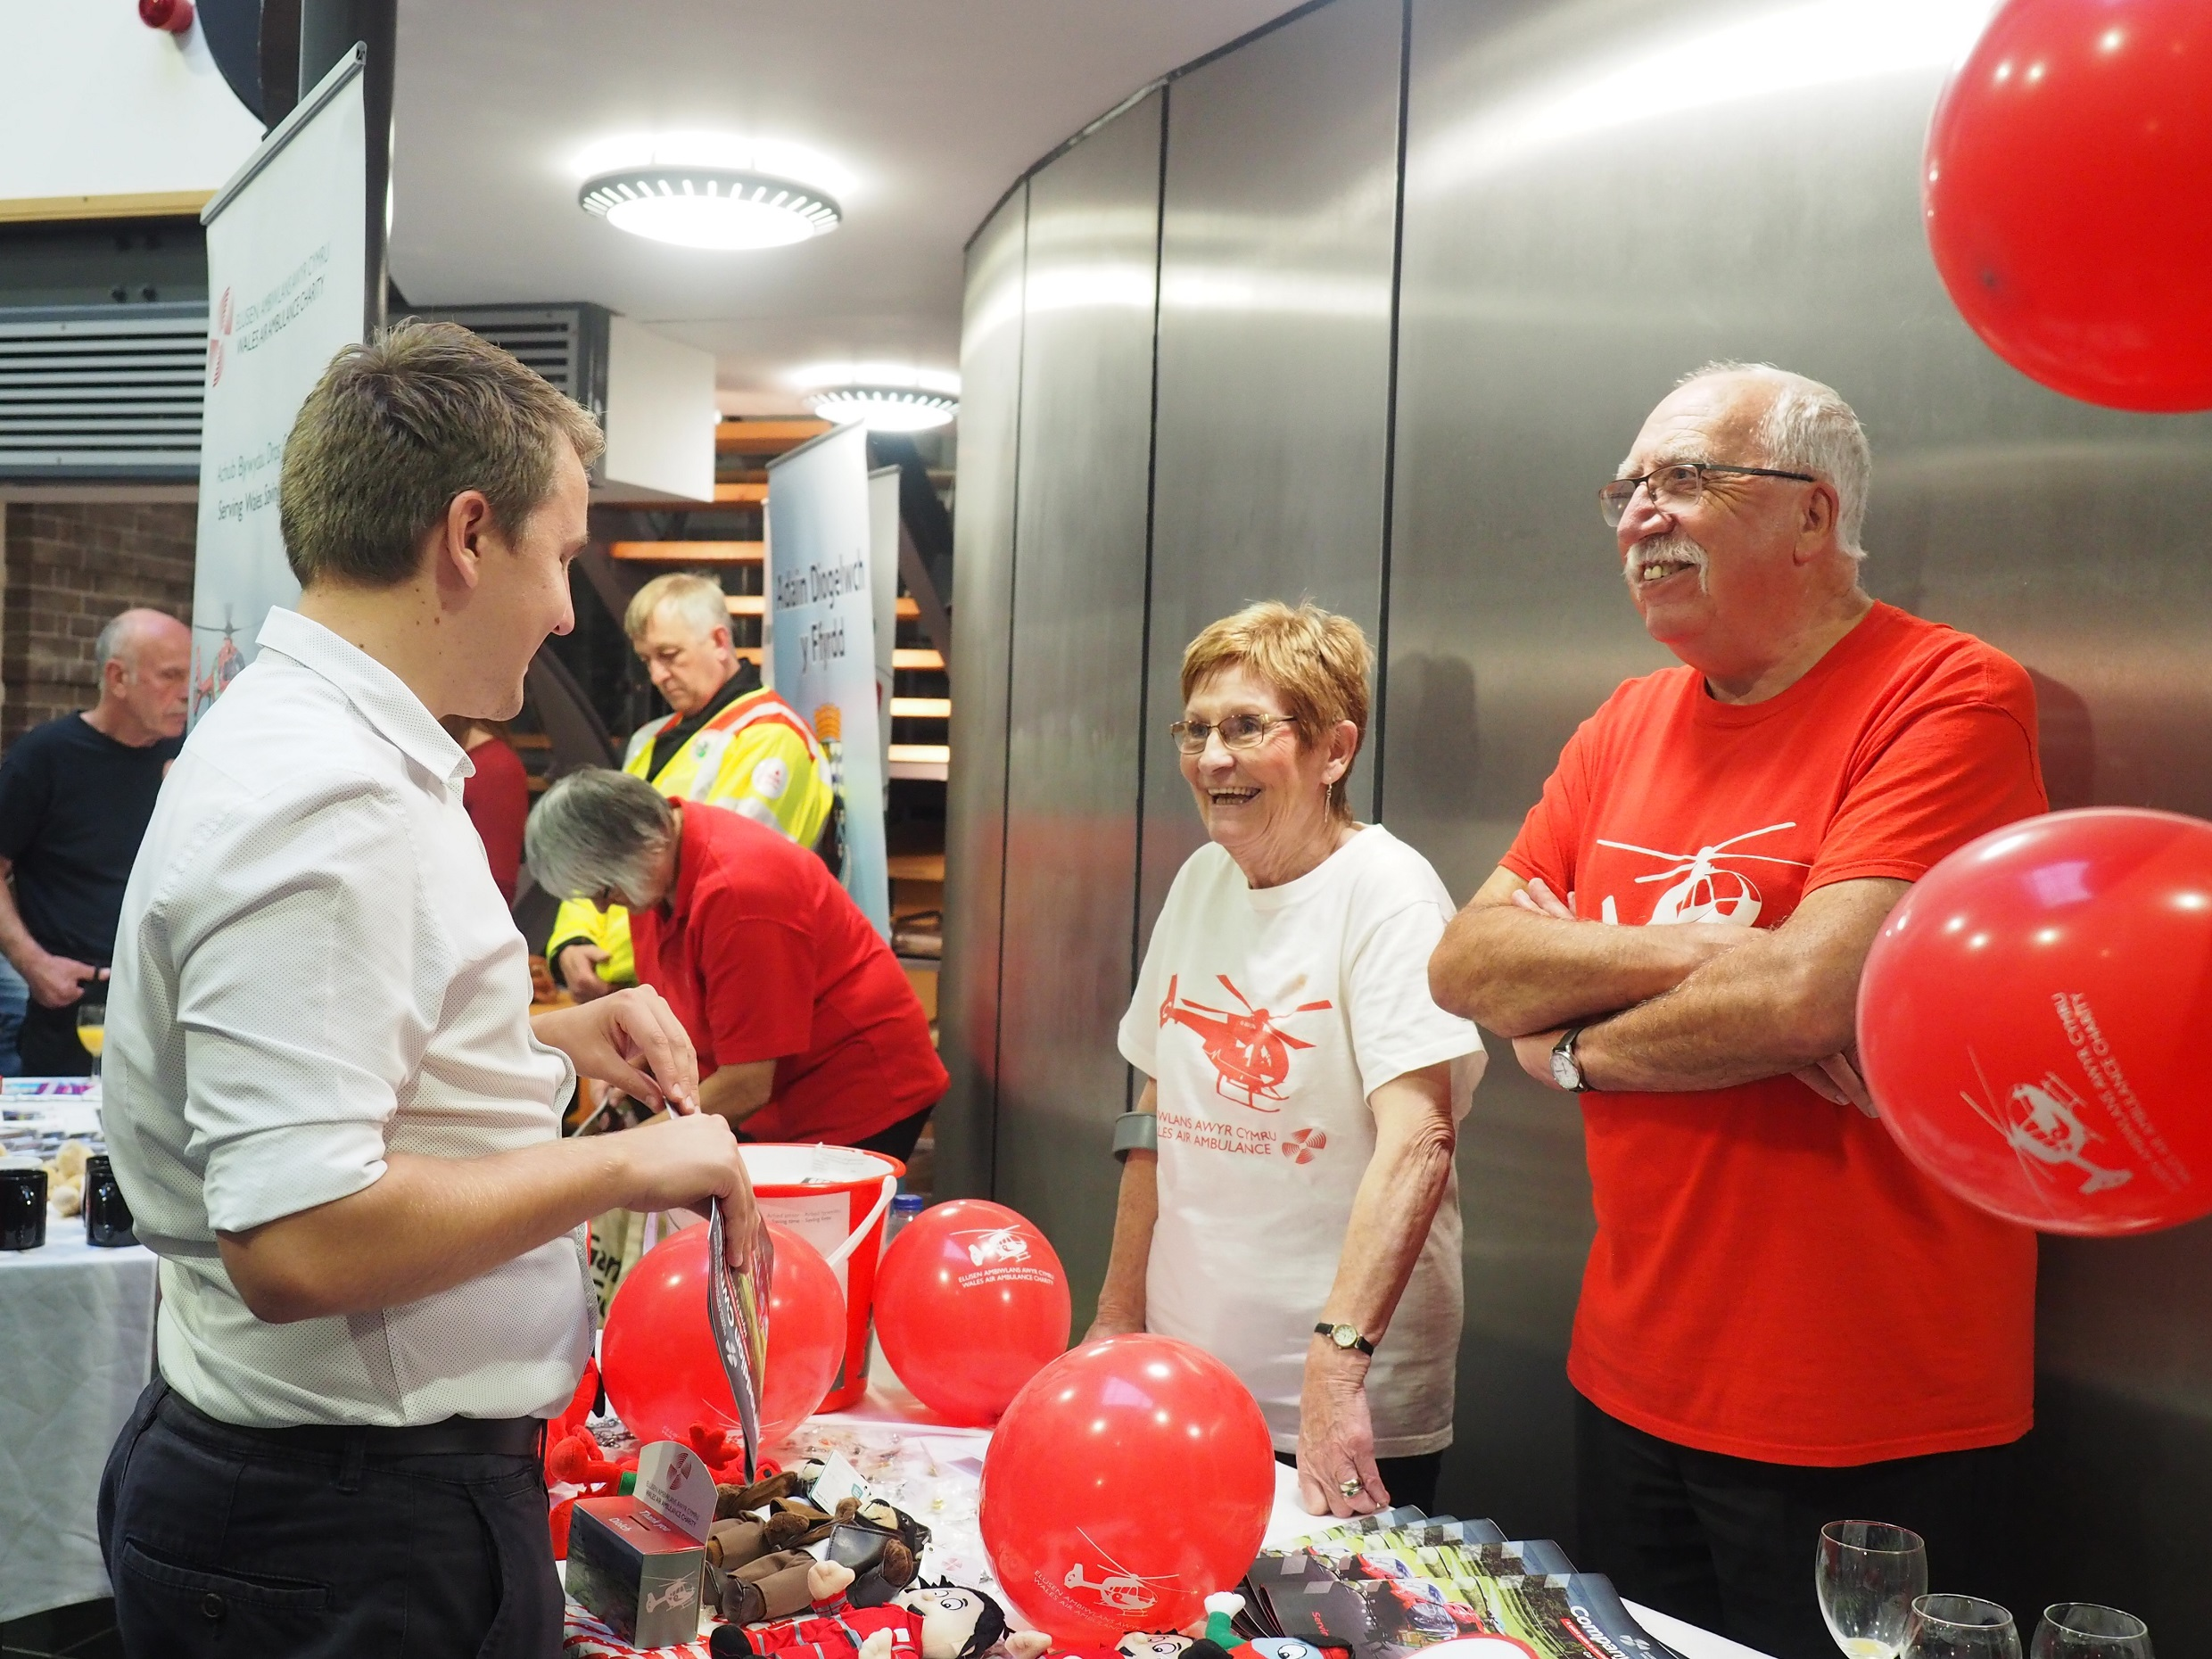 Wales Air Ambulance volunteers man a publicity stand with balloons and charity merchandise at an event. A man and a woman are wearing red and white charity t-shirts and laughing with a visitor